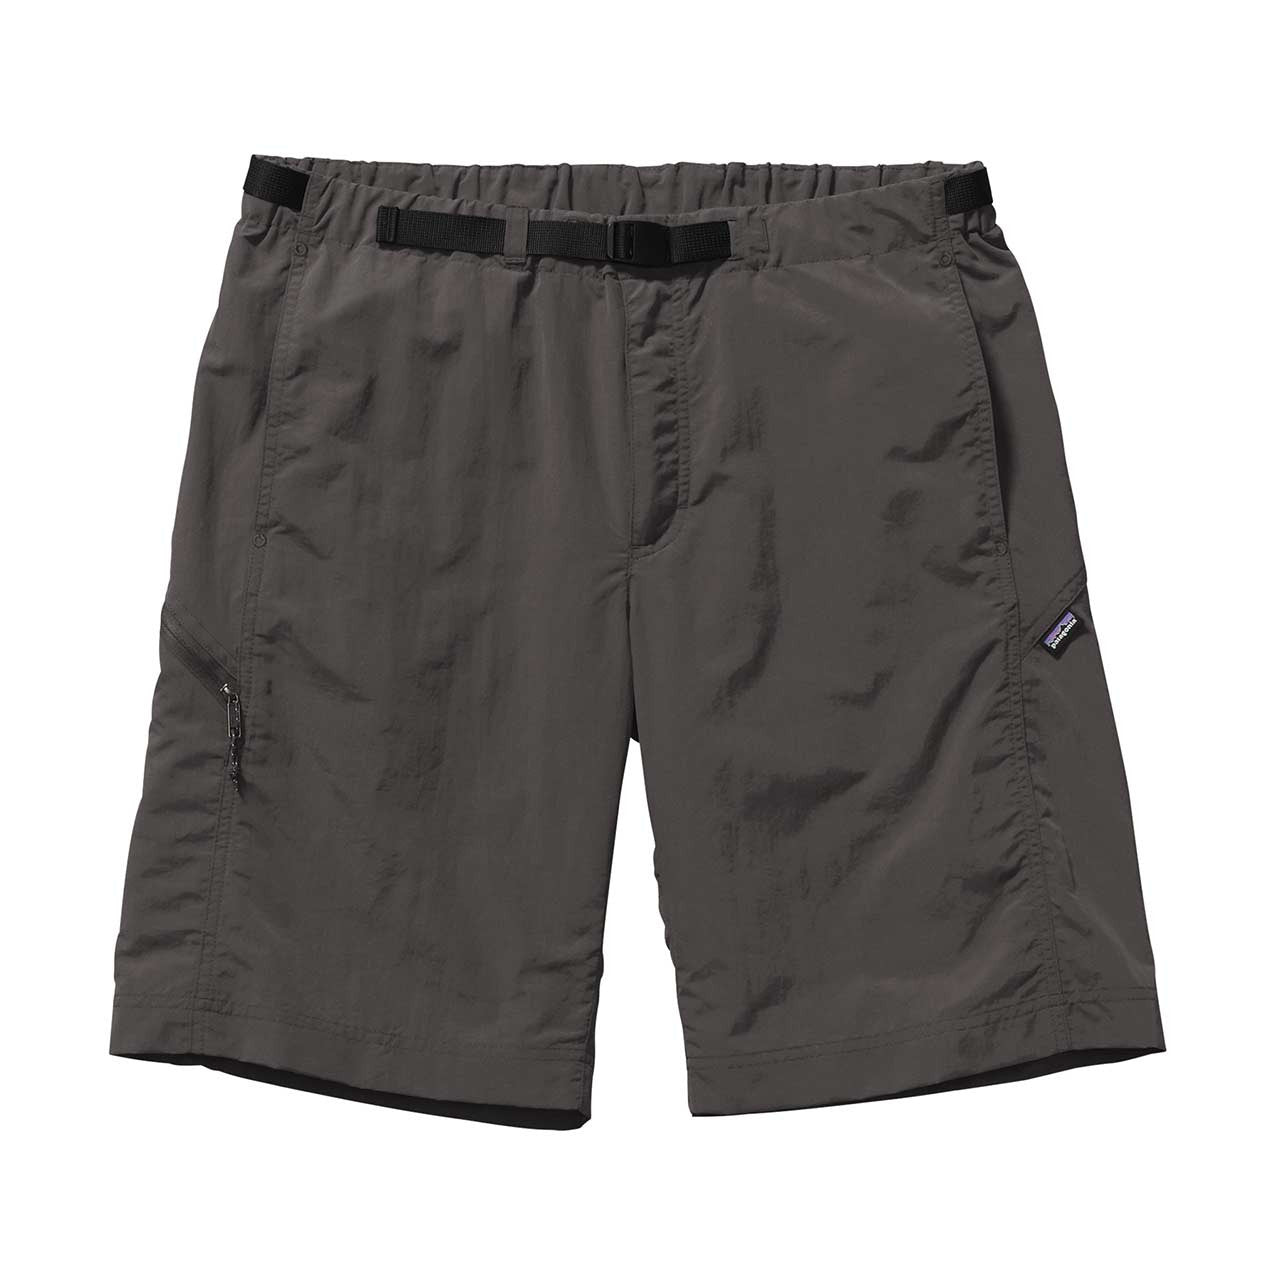 Patagonia_M's Gi III Shorts - 1 in._Forge Grey_L